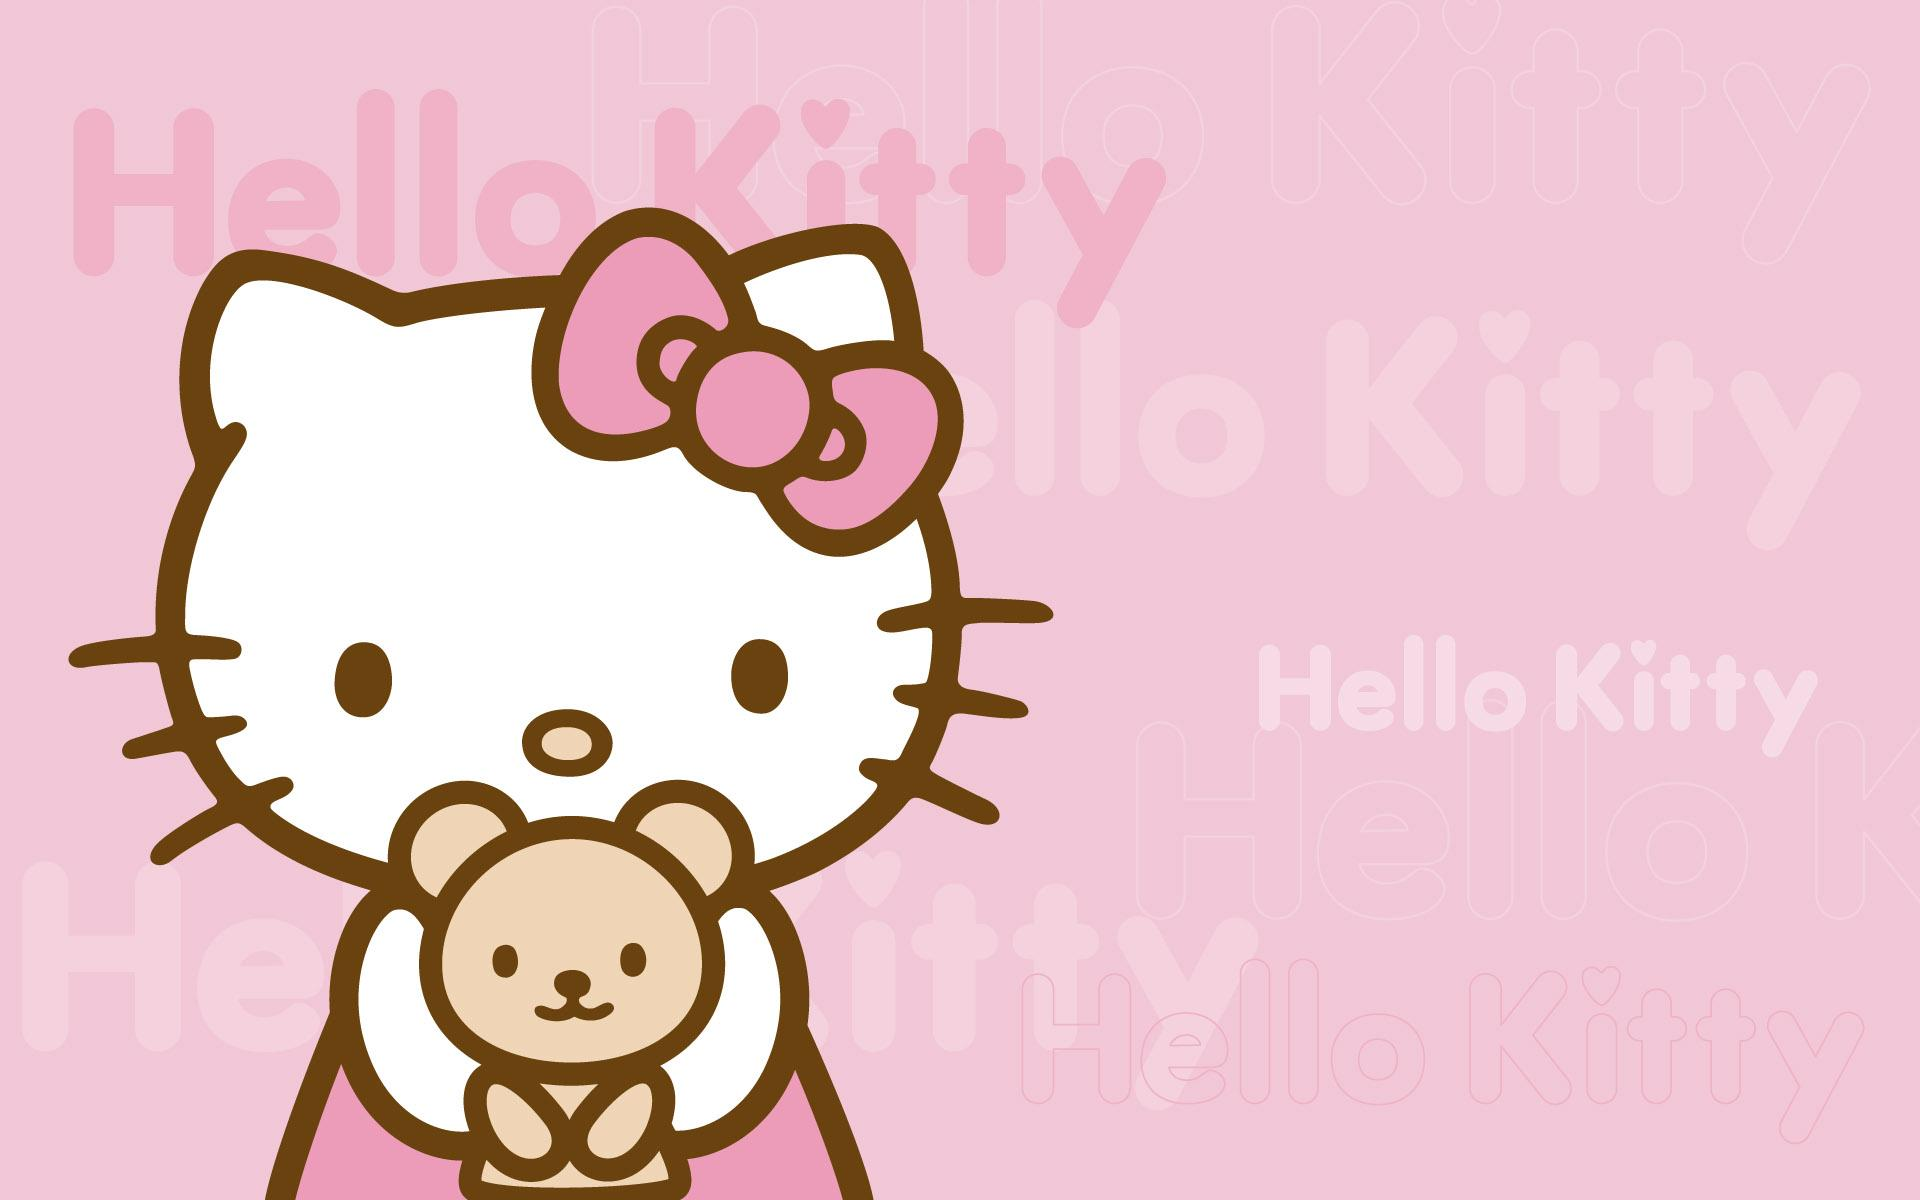 Hello Kitty Wallpapers Hello Kitty Wallpapers Part 3 | HD Wallpapers ...